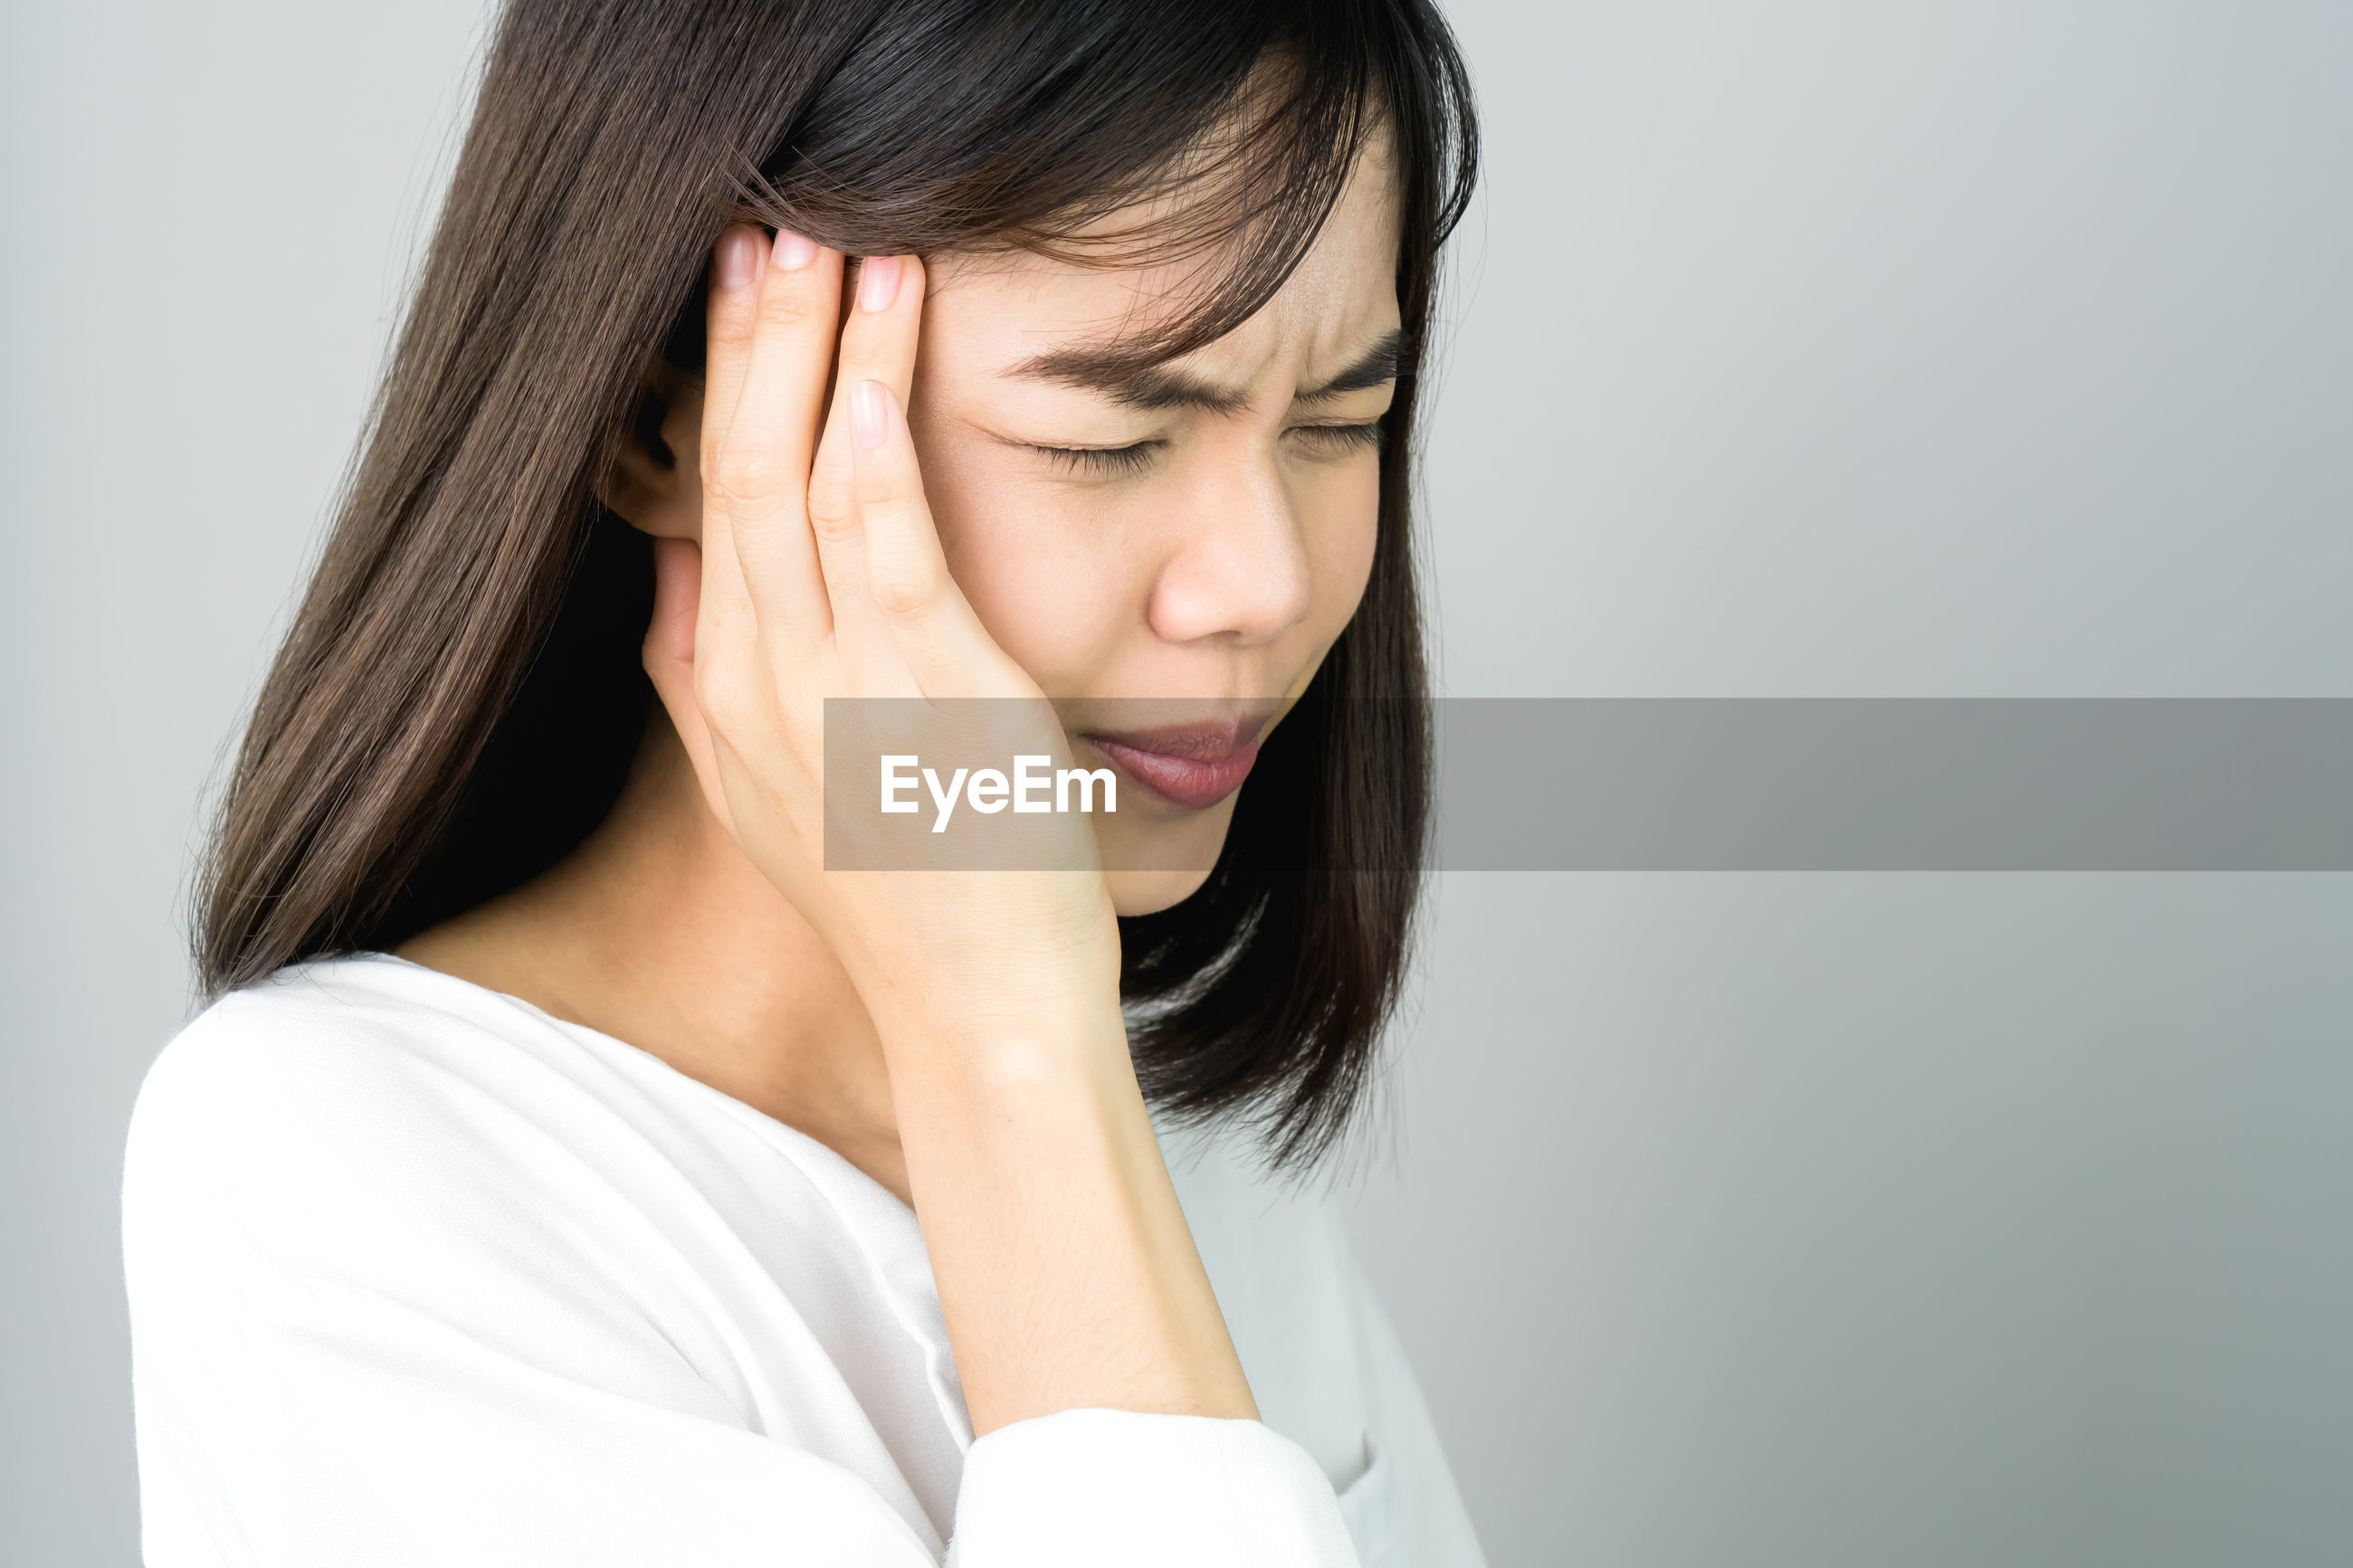 Woman with headache against gray background